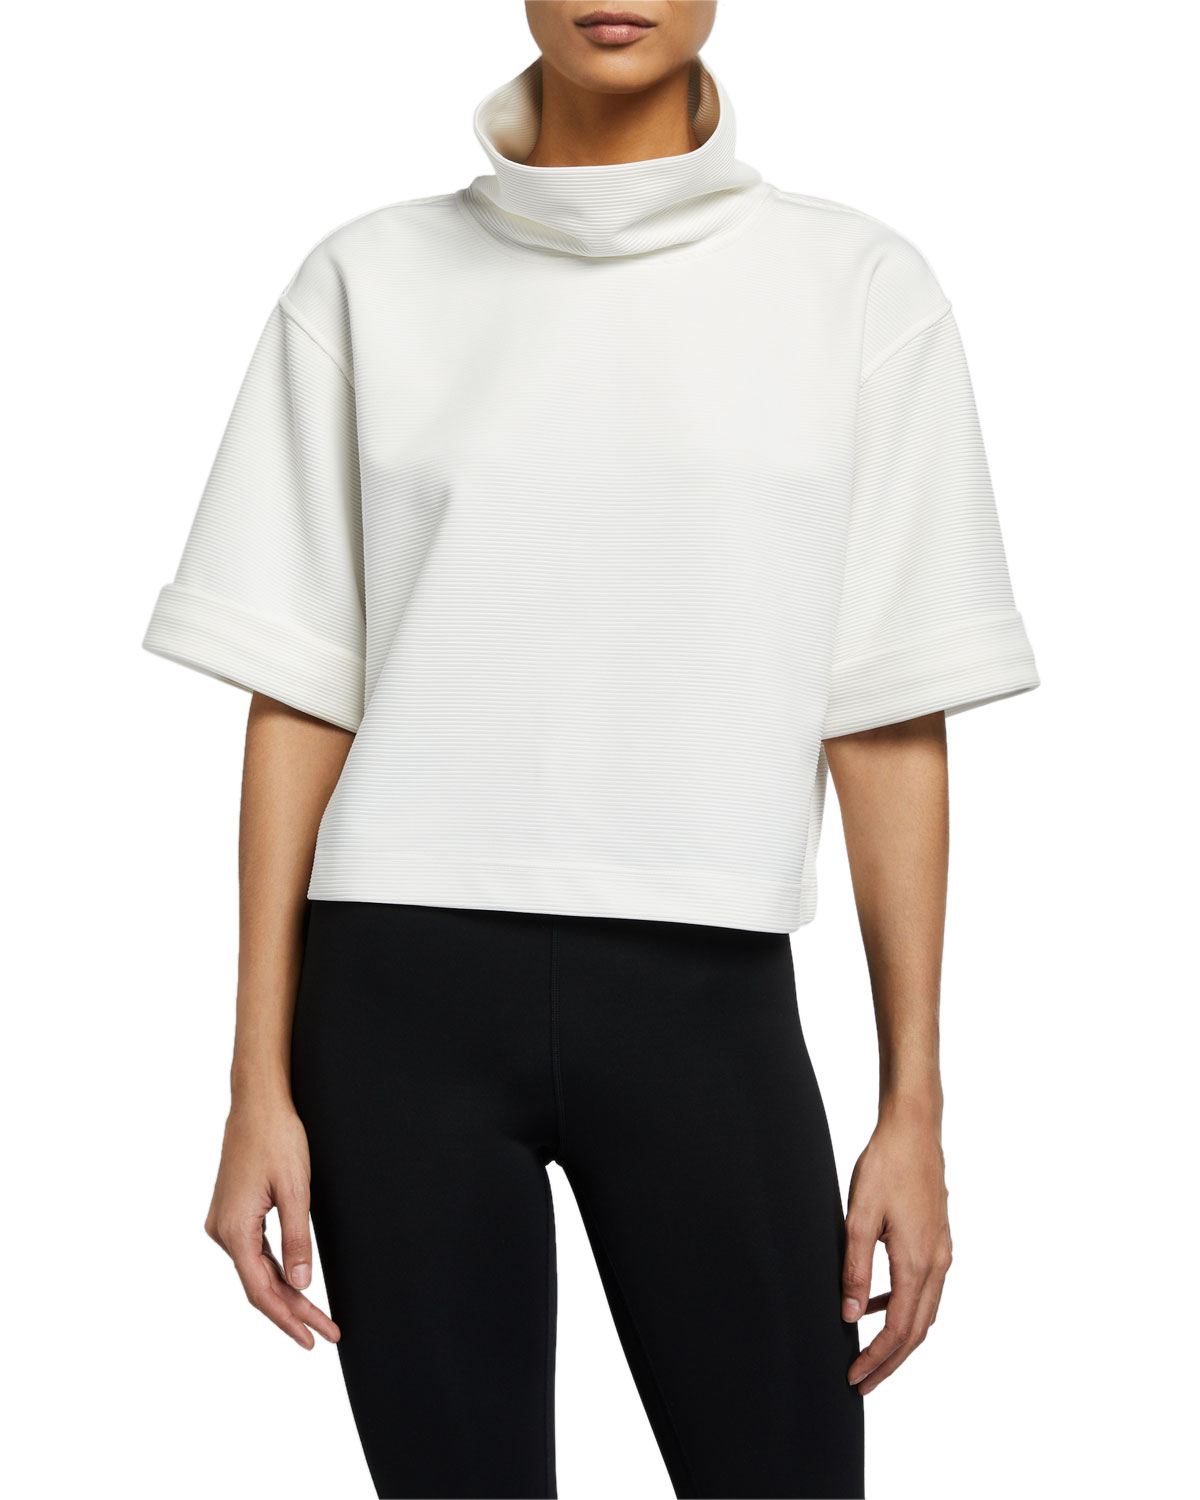 Aurum Legend Short-Sleeve Top